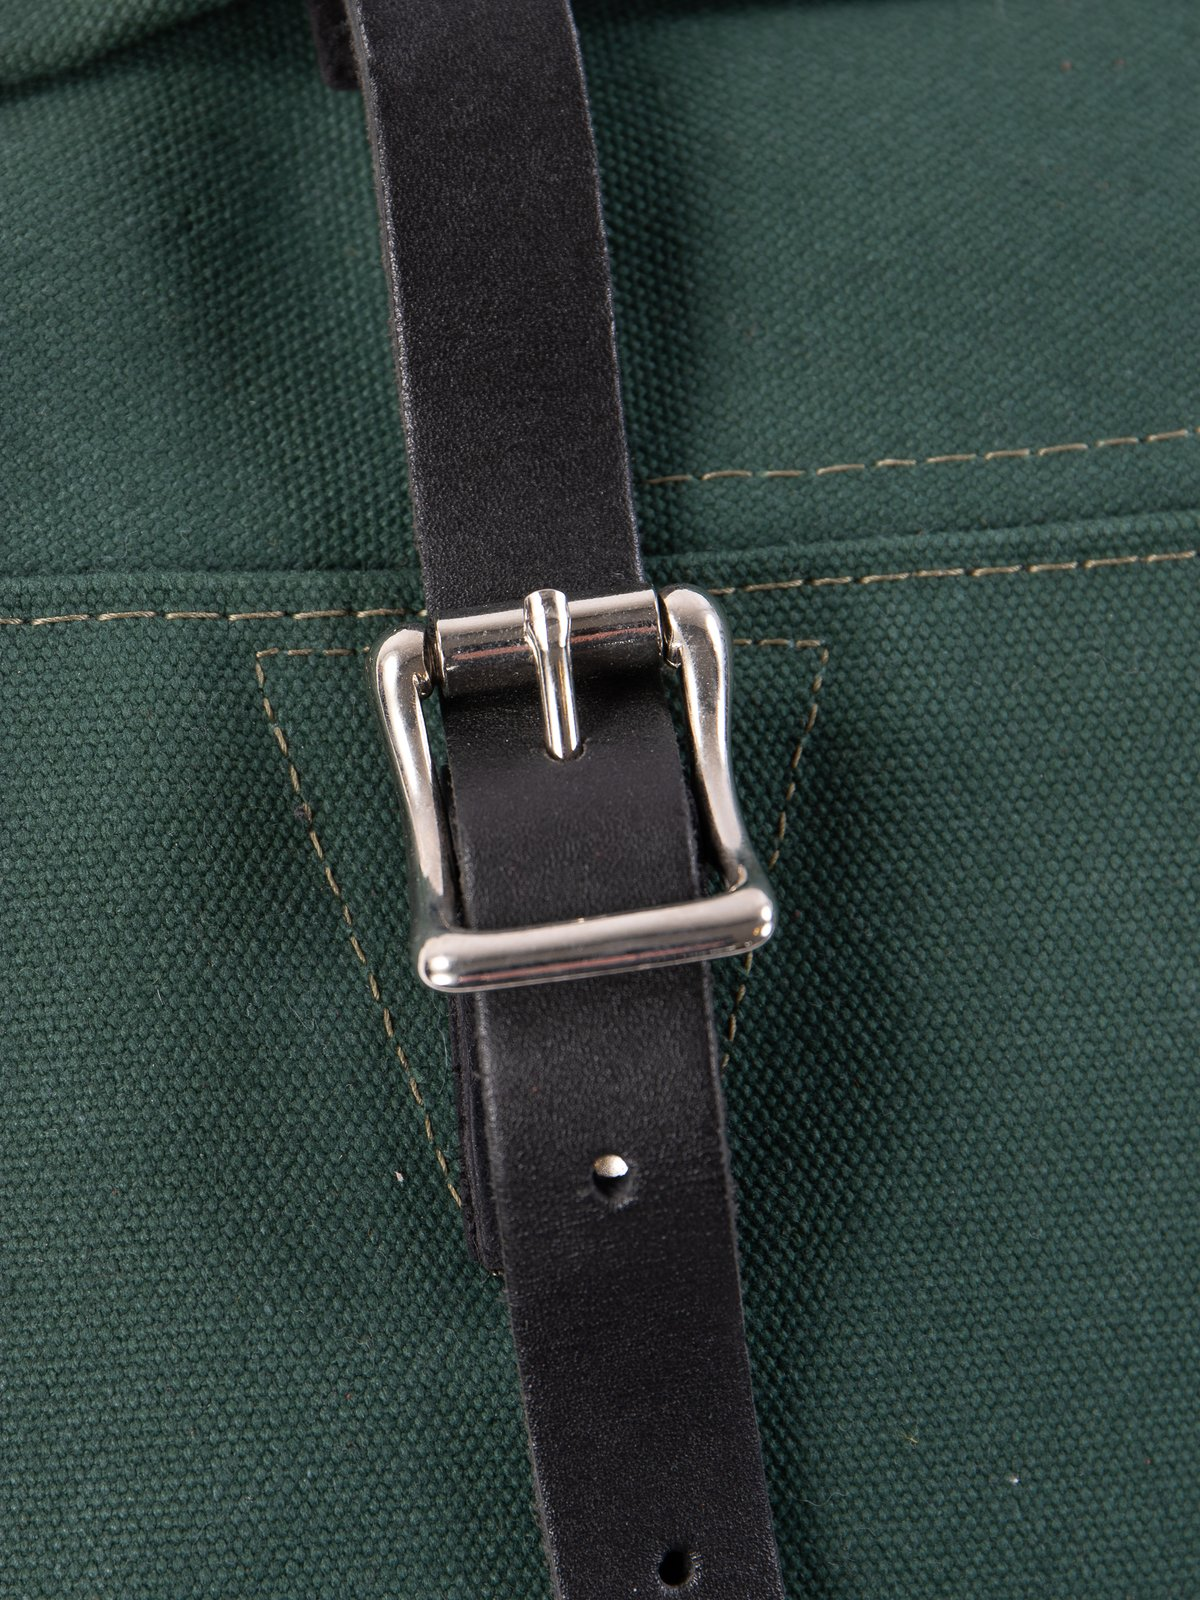 Hunter Green 18oz Canvas Trek Pack - Image 3